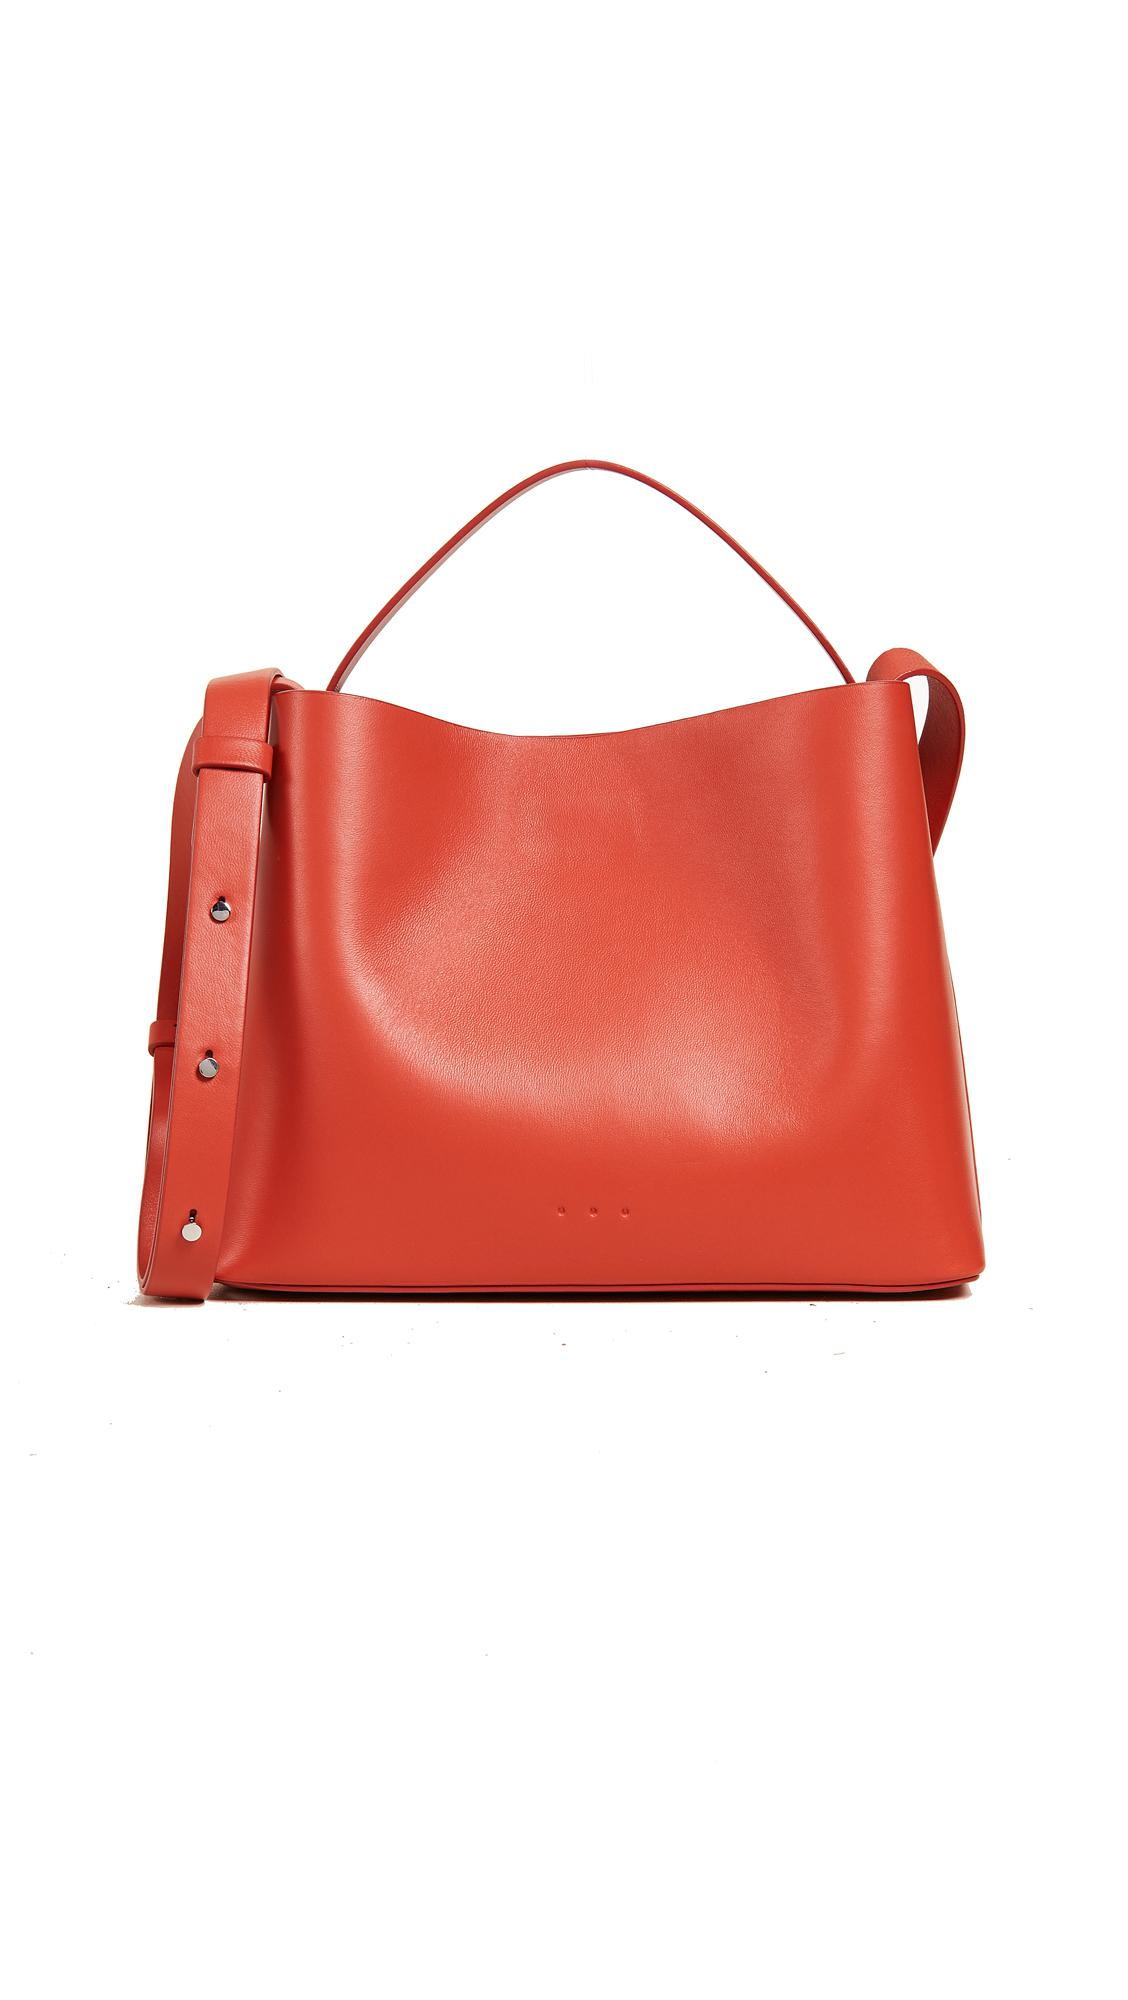 Aesther Ekme Leather Mini Sac Tote Bag in Electric Red (Red)